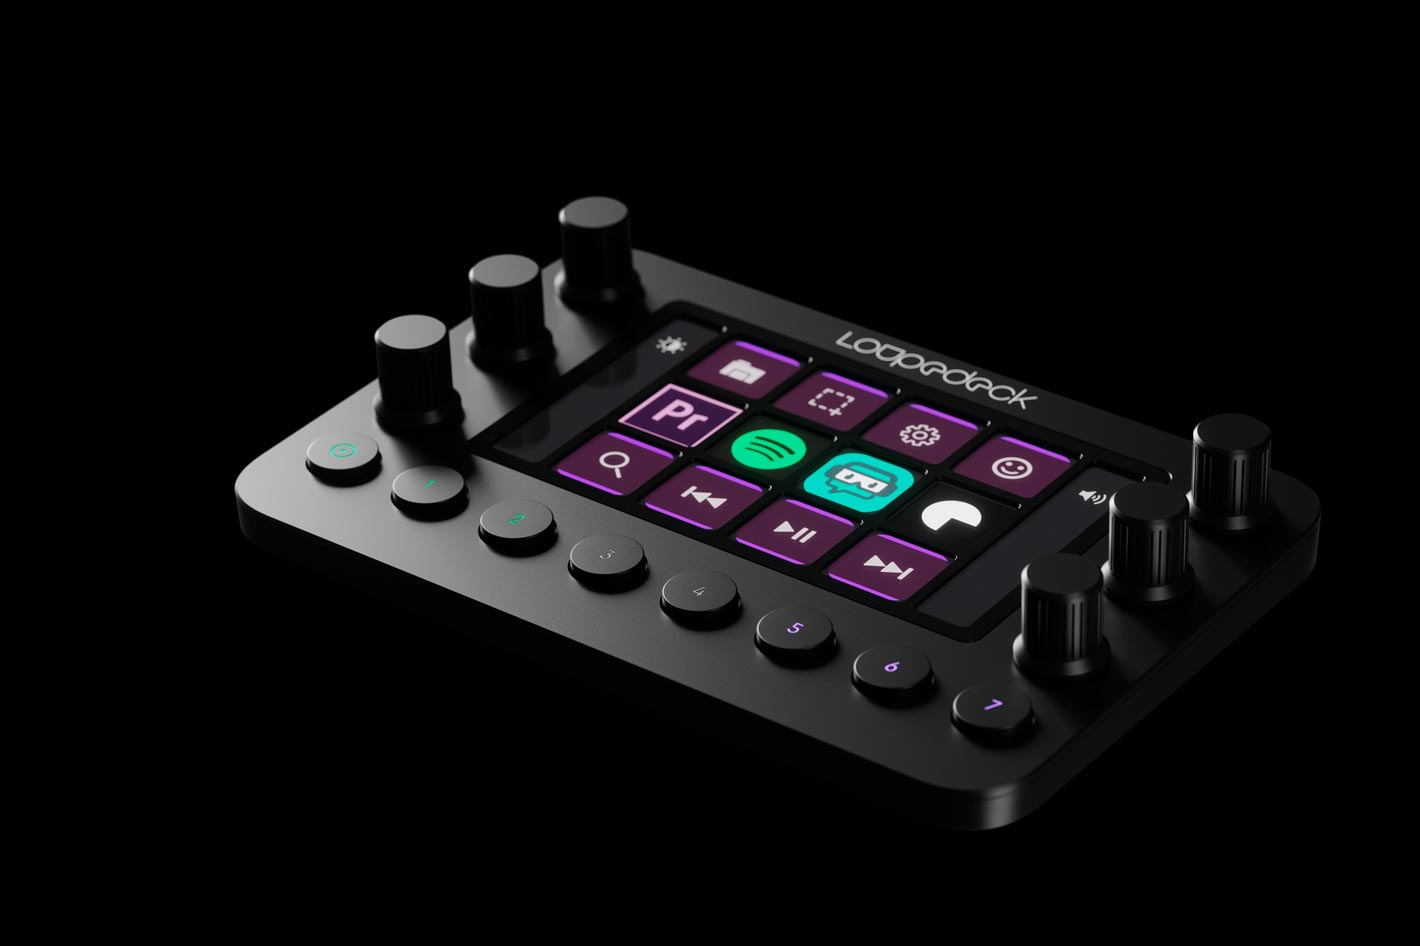 Loupedeck has a new plugin for Photoshop